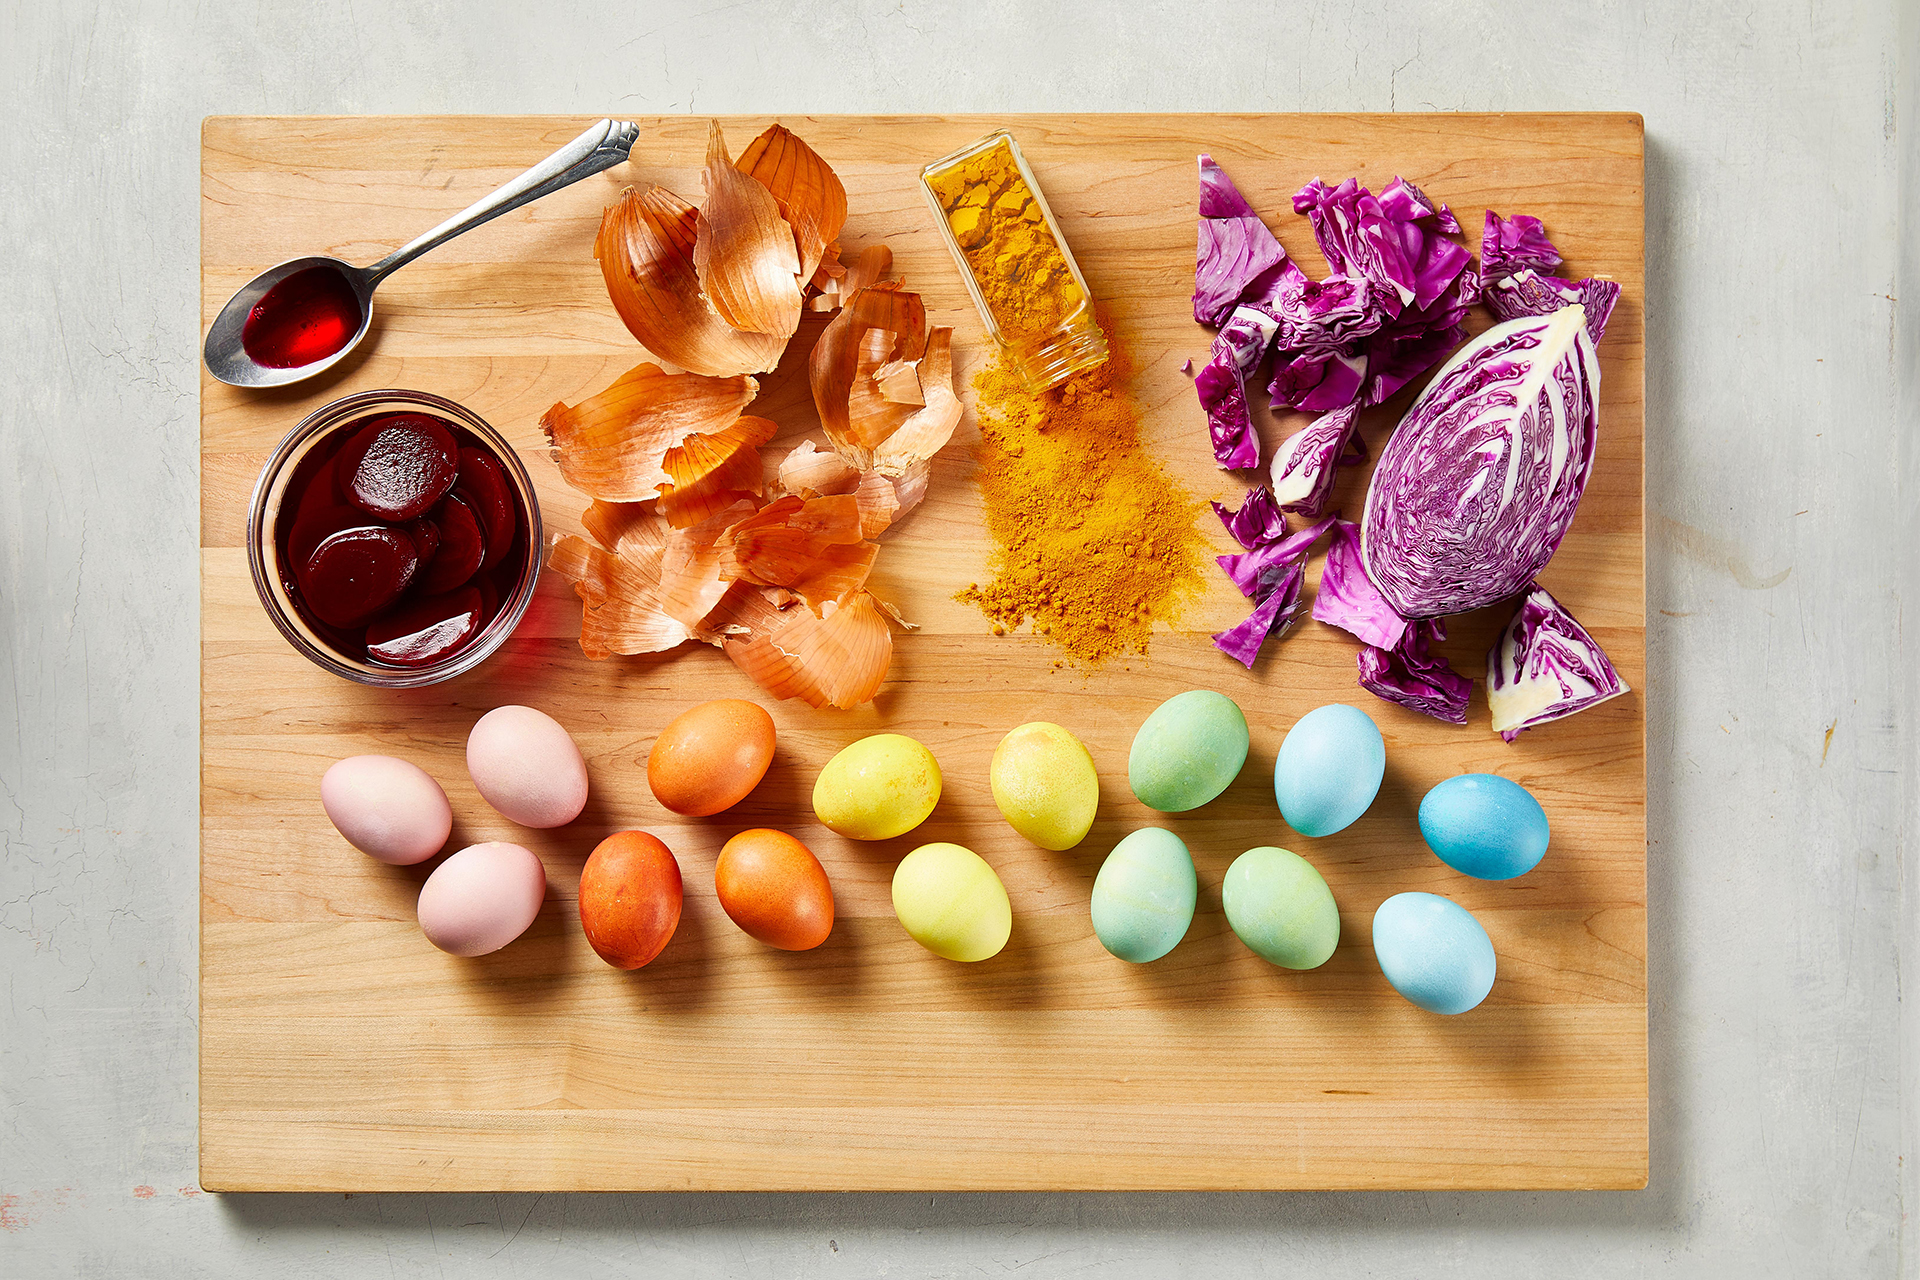 using natural dyes for easter egg decorating